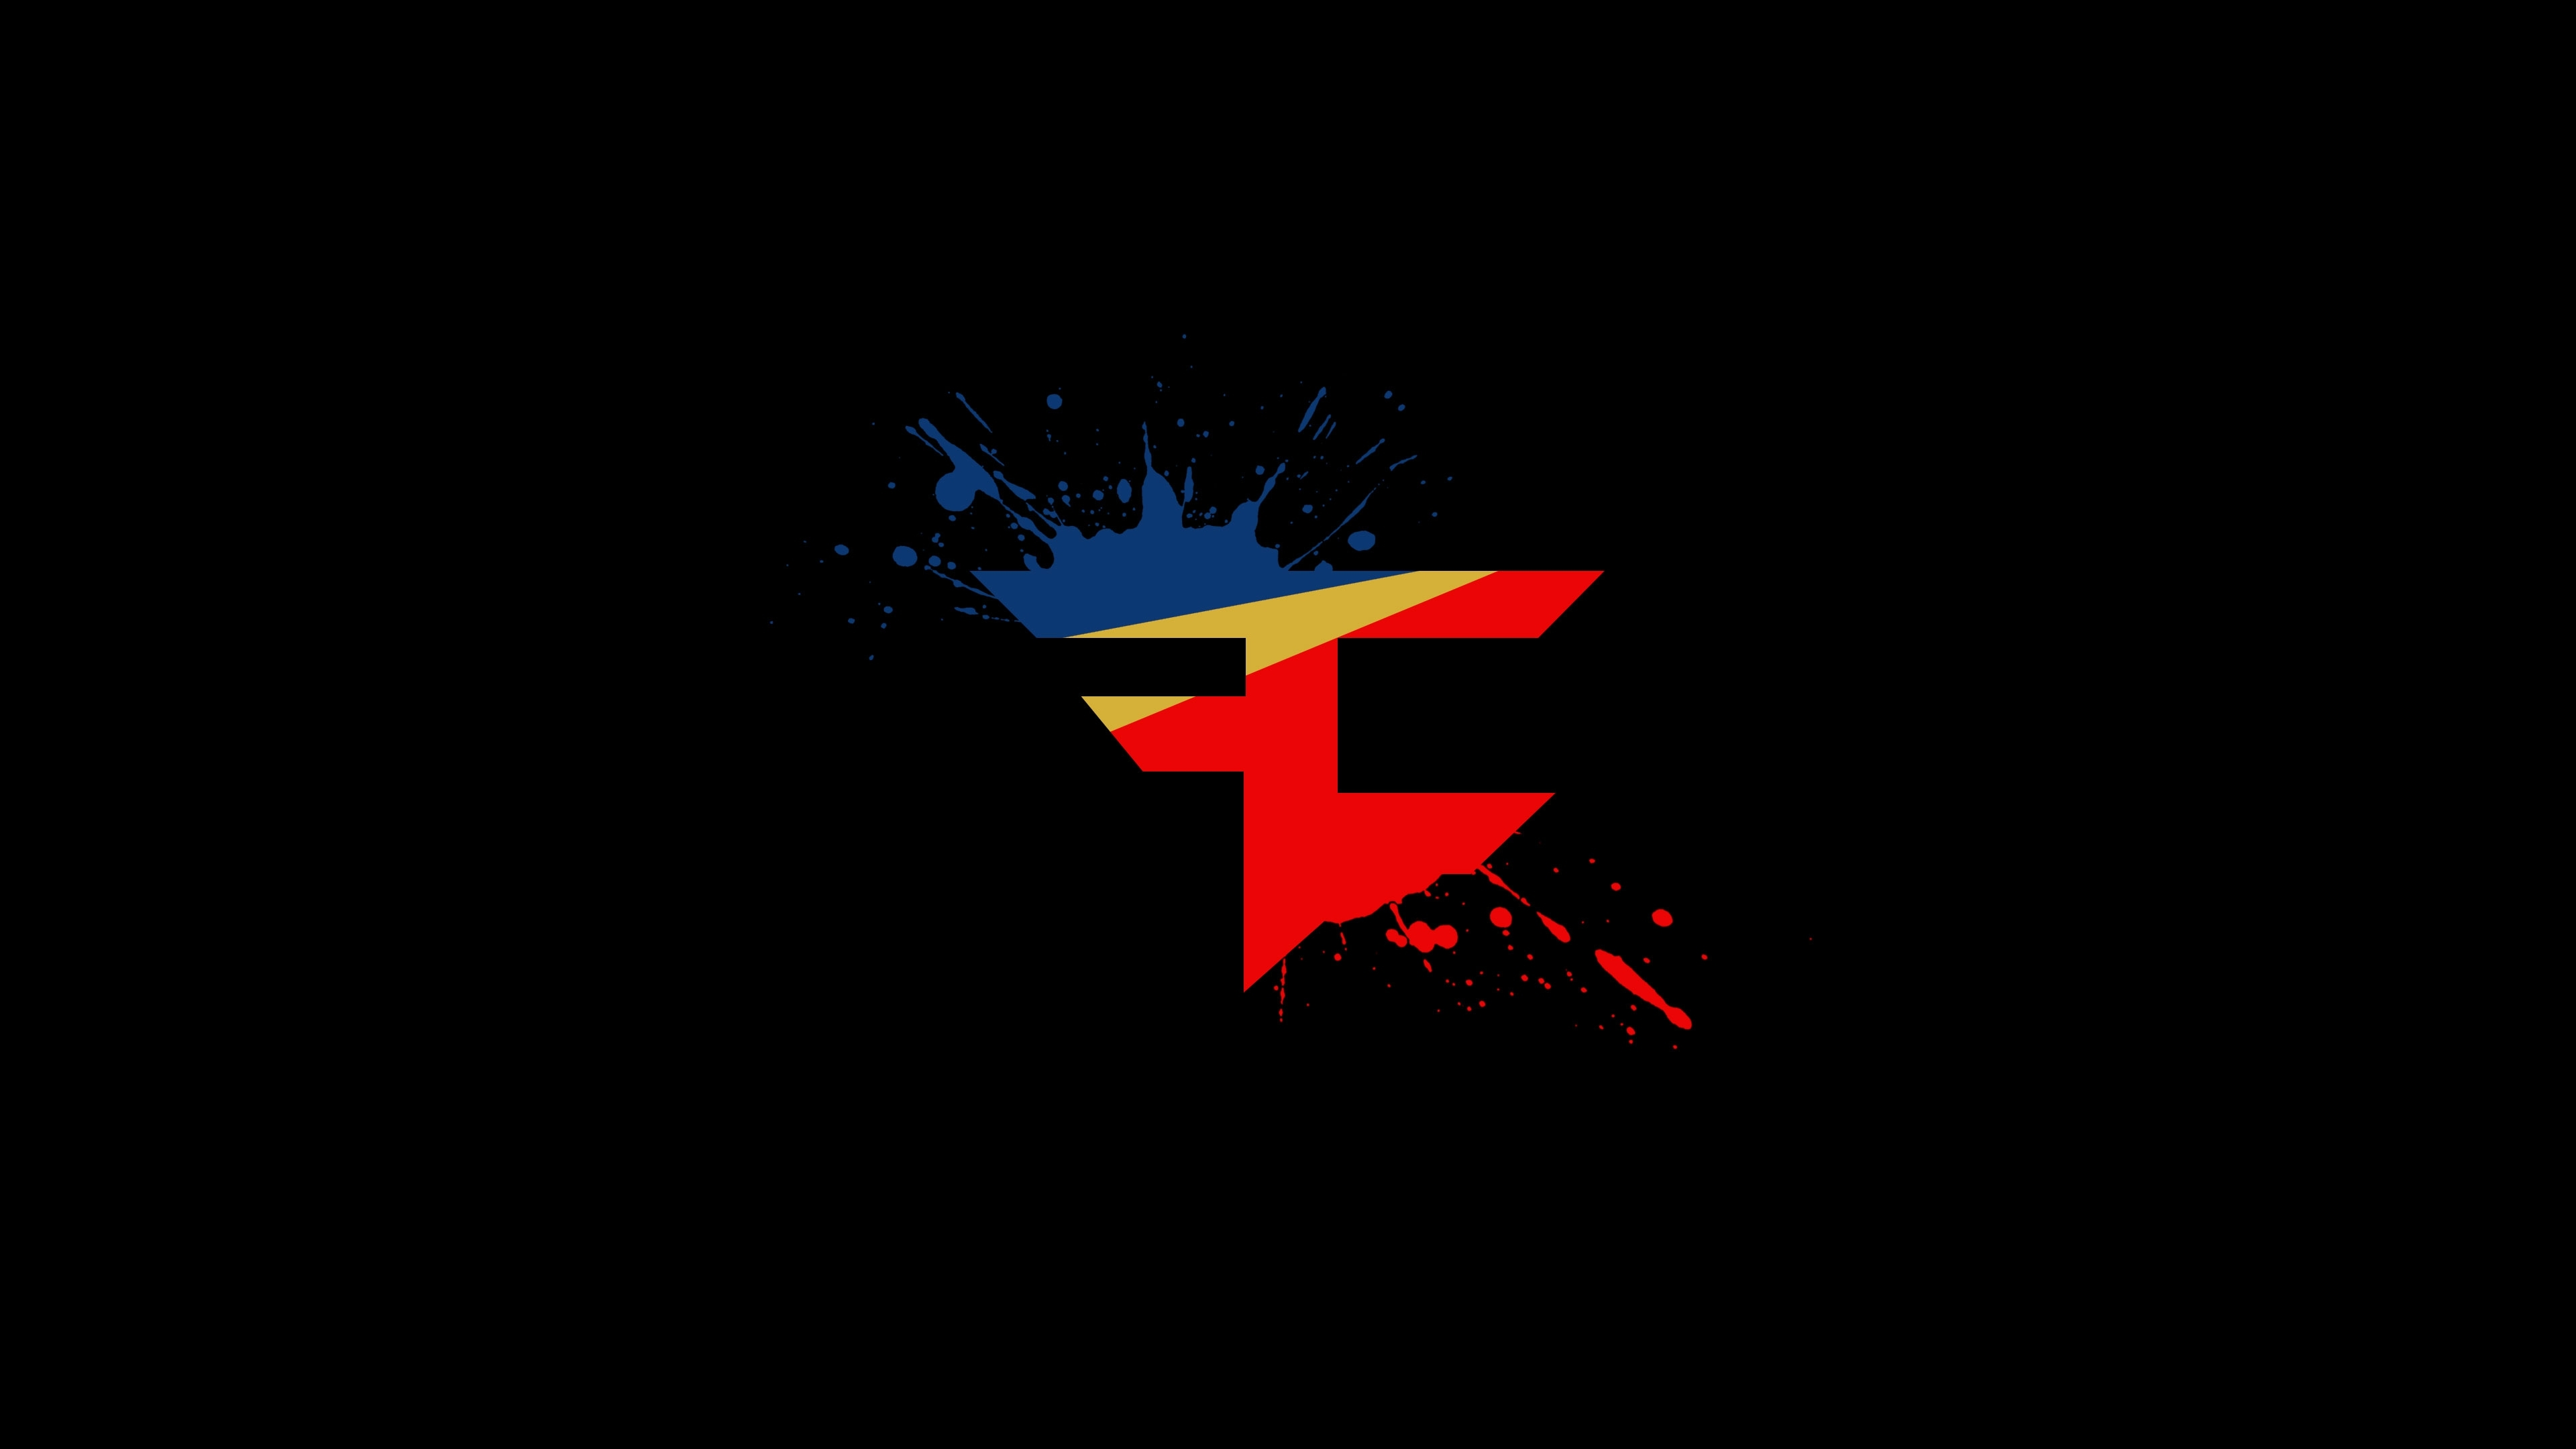 10 Most Popular Faze Clan Wallpaper Hd Full Hd 1080p For Pc Desktop 2019